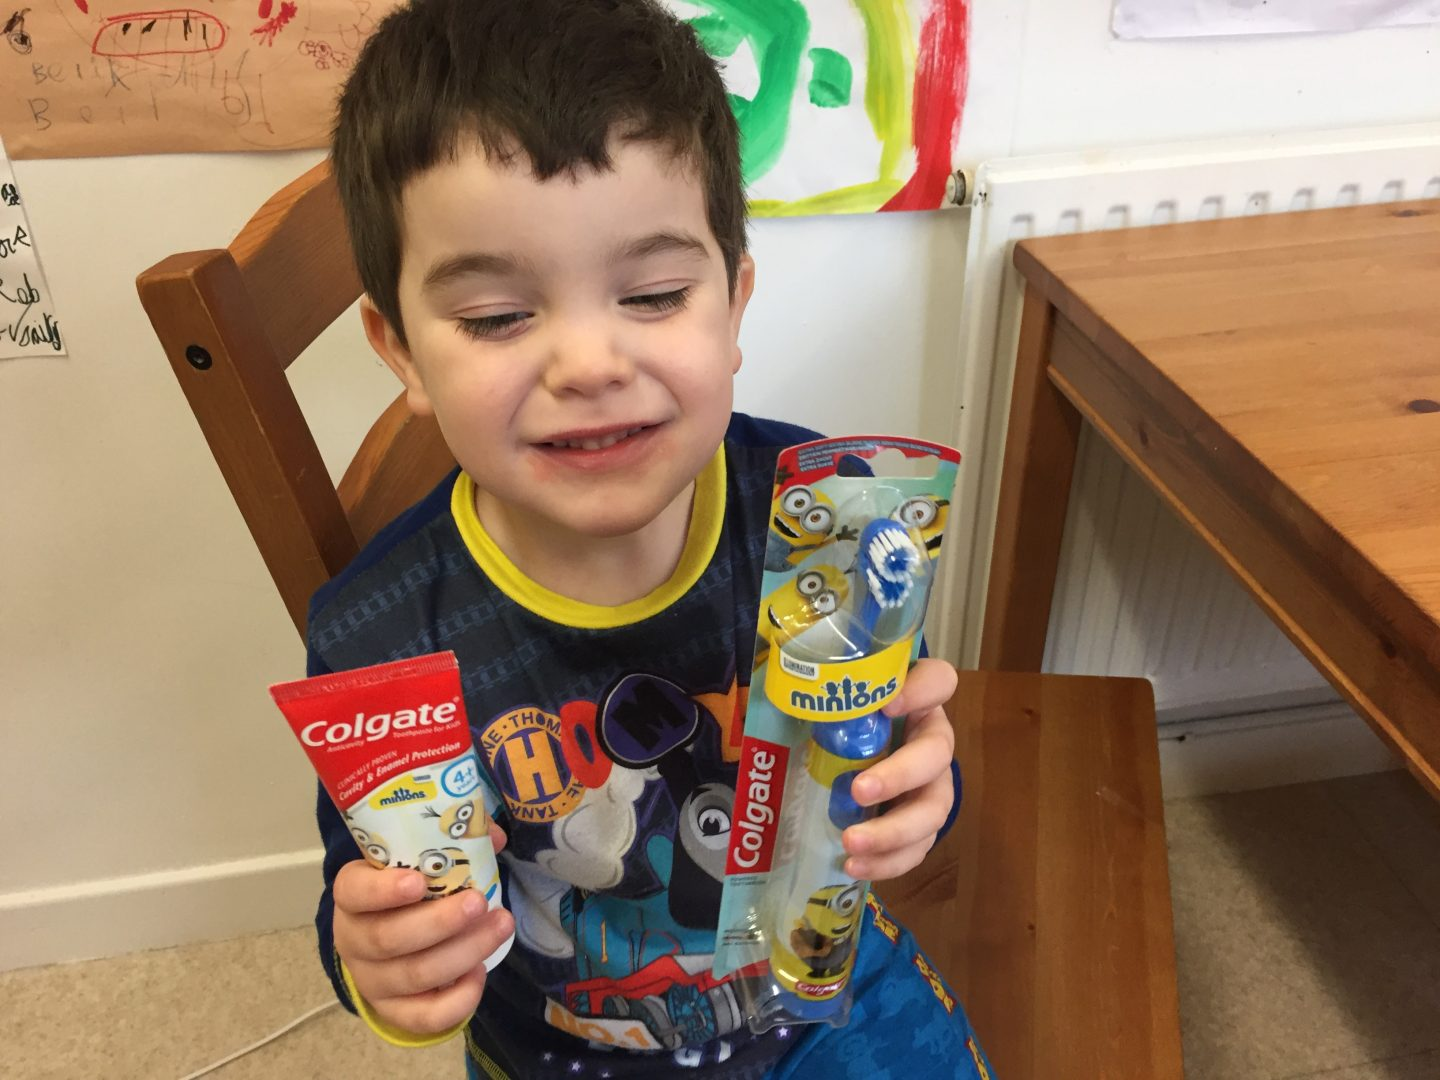 Colgate minions products